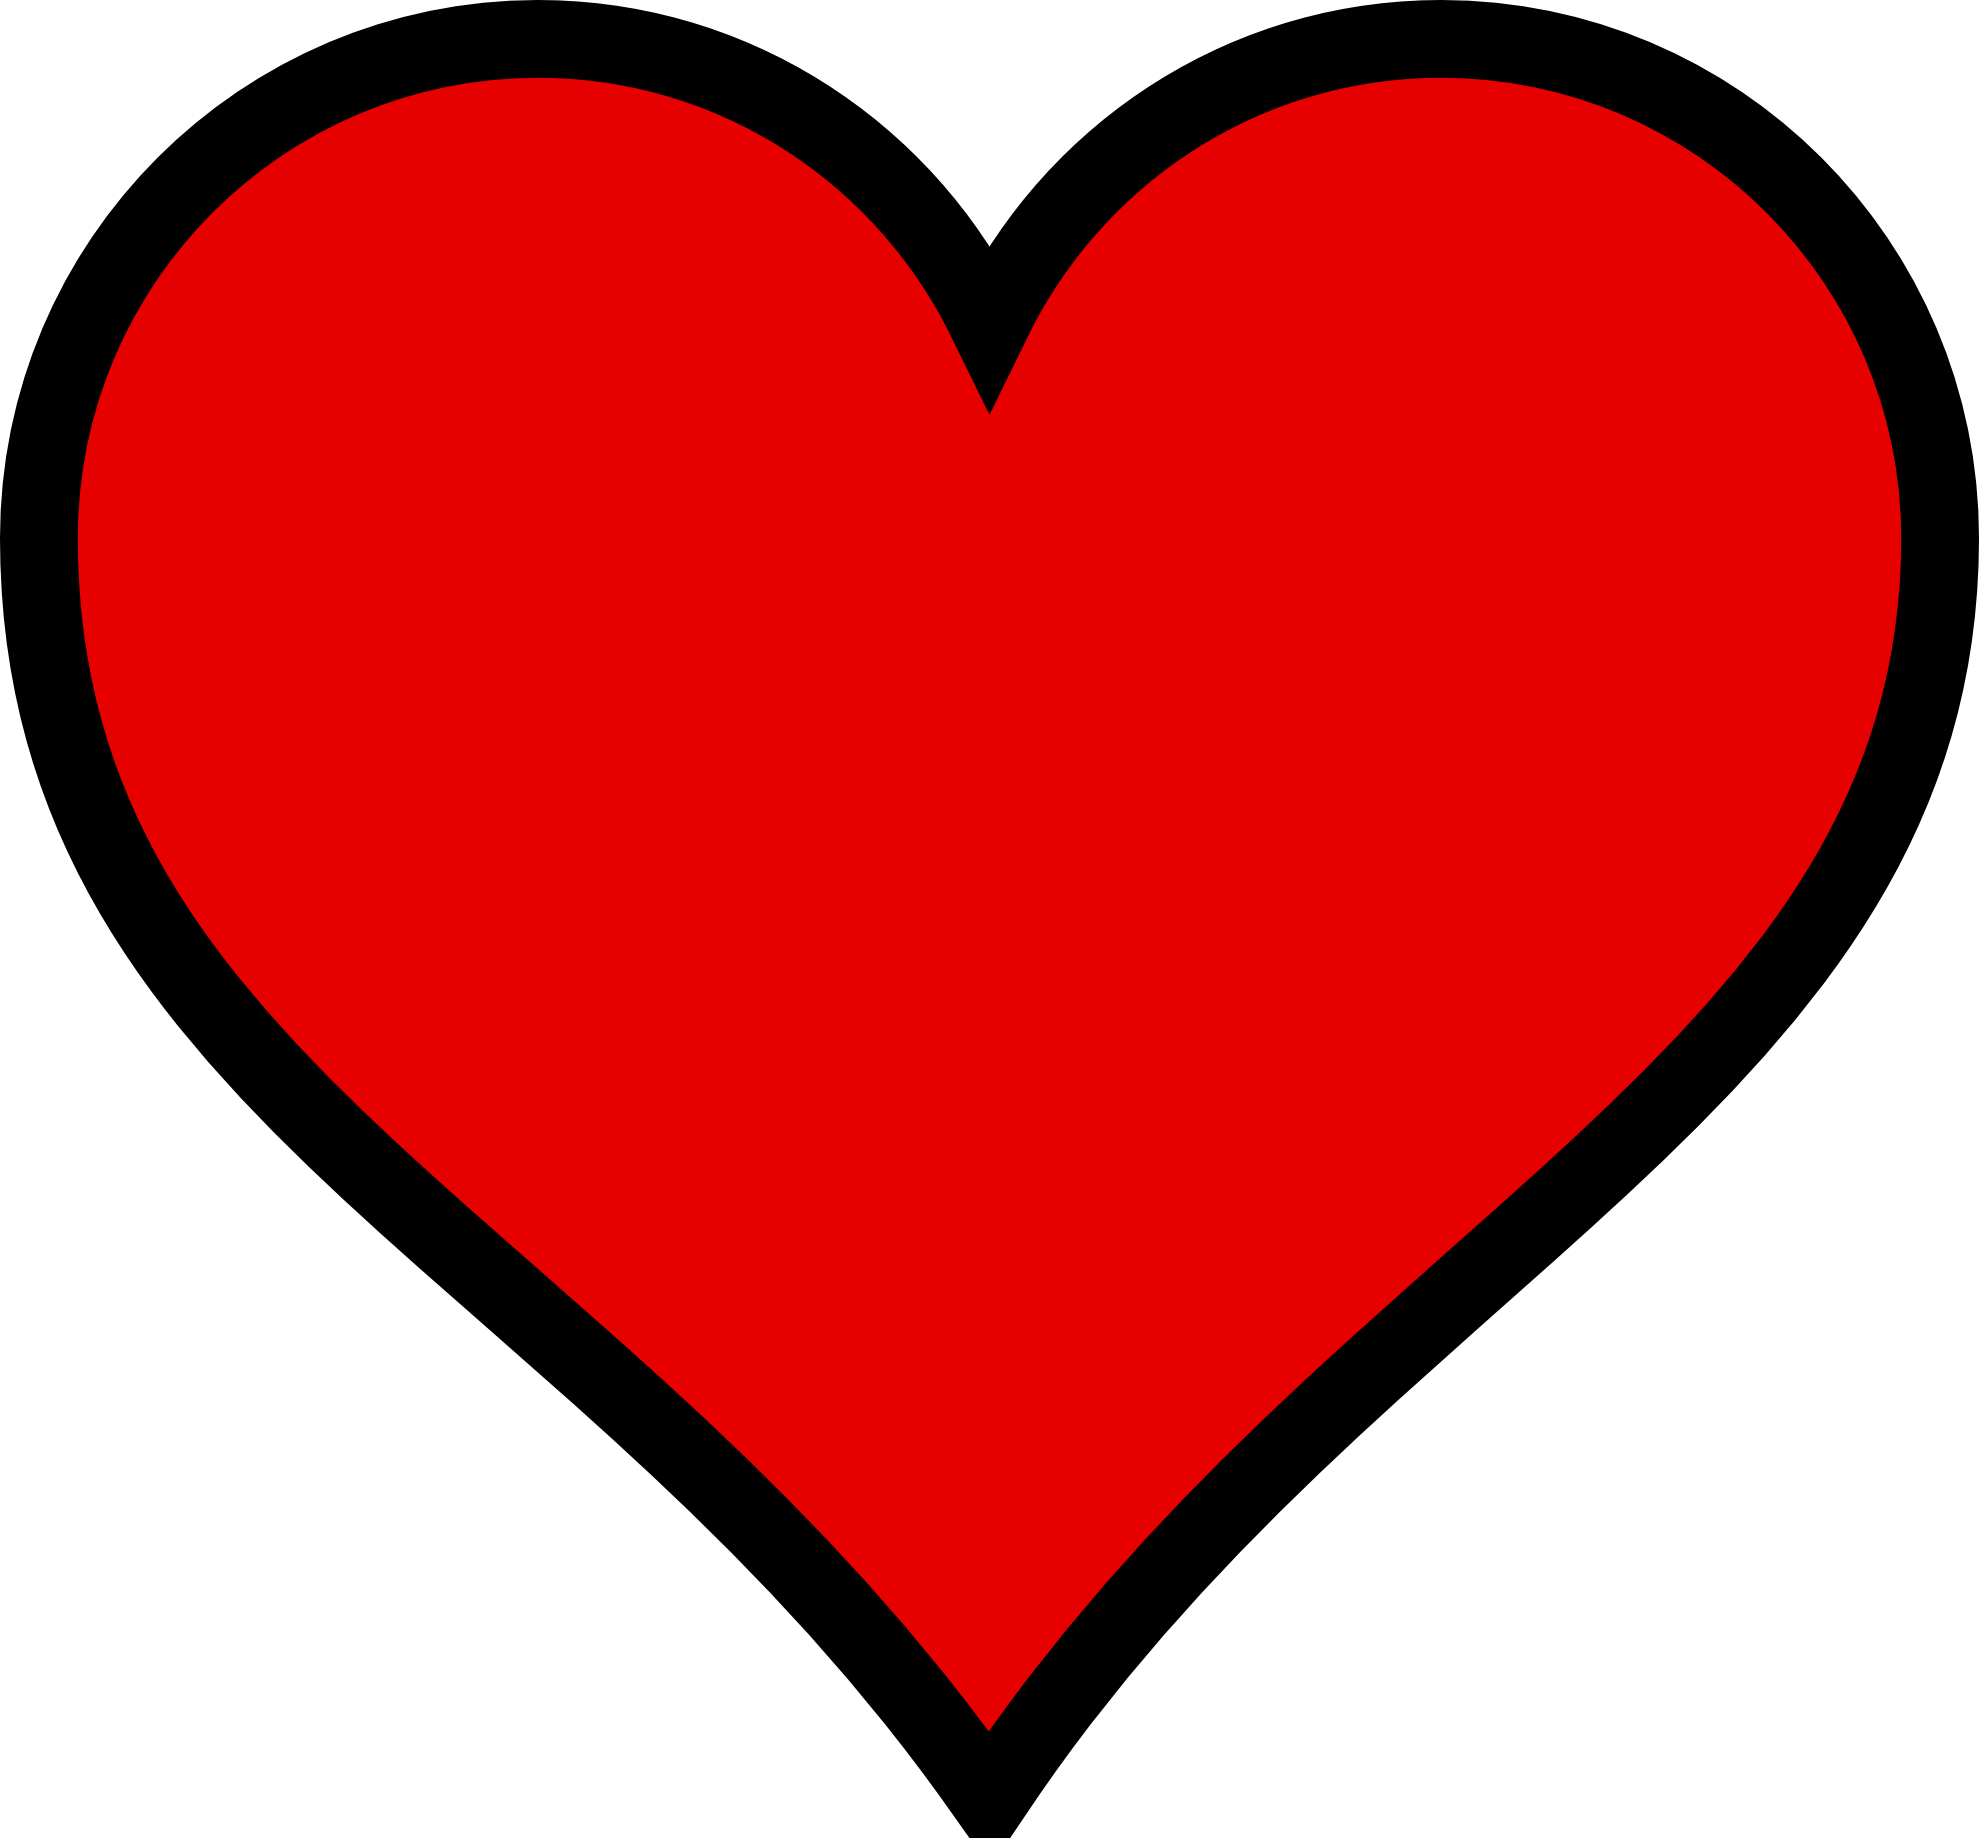 Heart-shaped clipart perfect #3